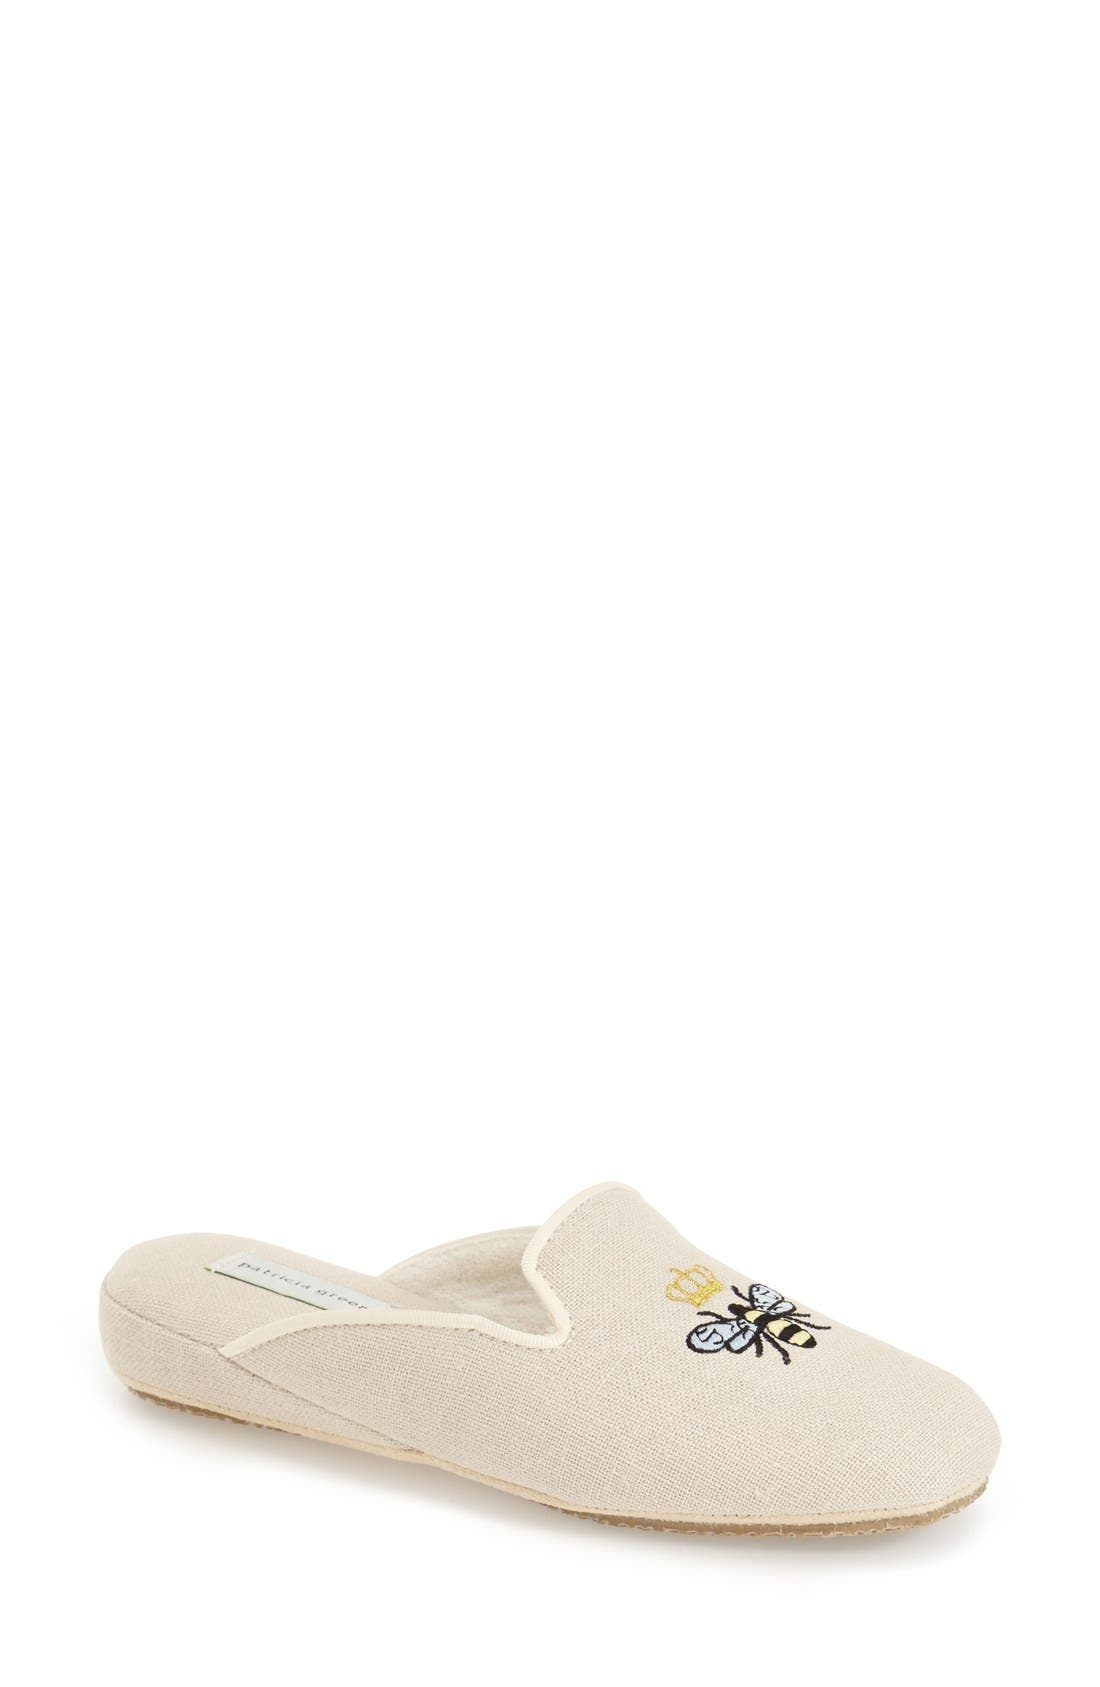 ,                             'Queen Bee' Embroidered Slipper,                             Main thumbnail 1, color,                             NATURAL